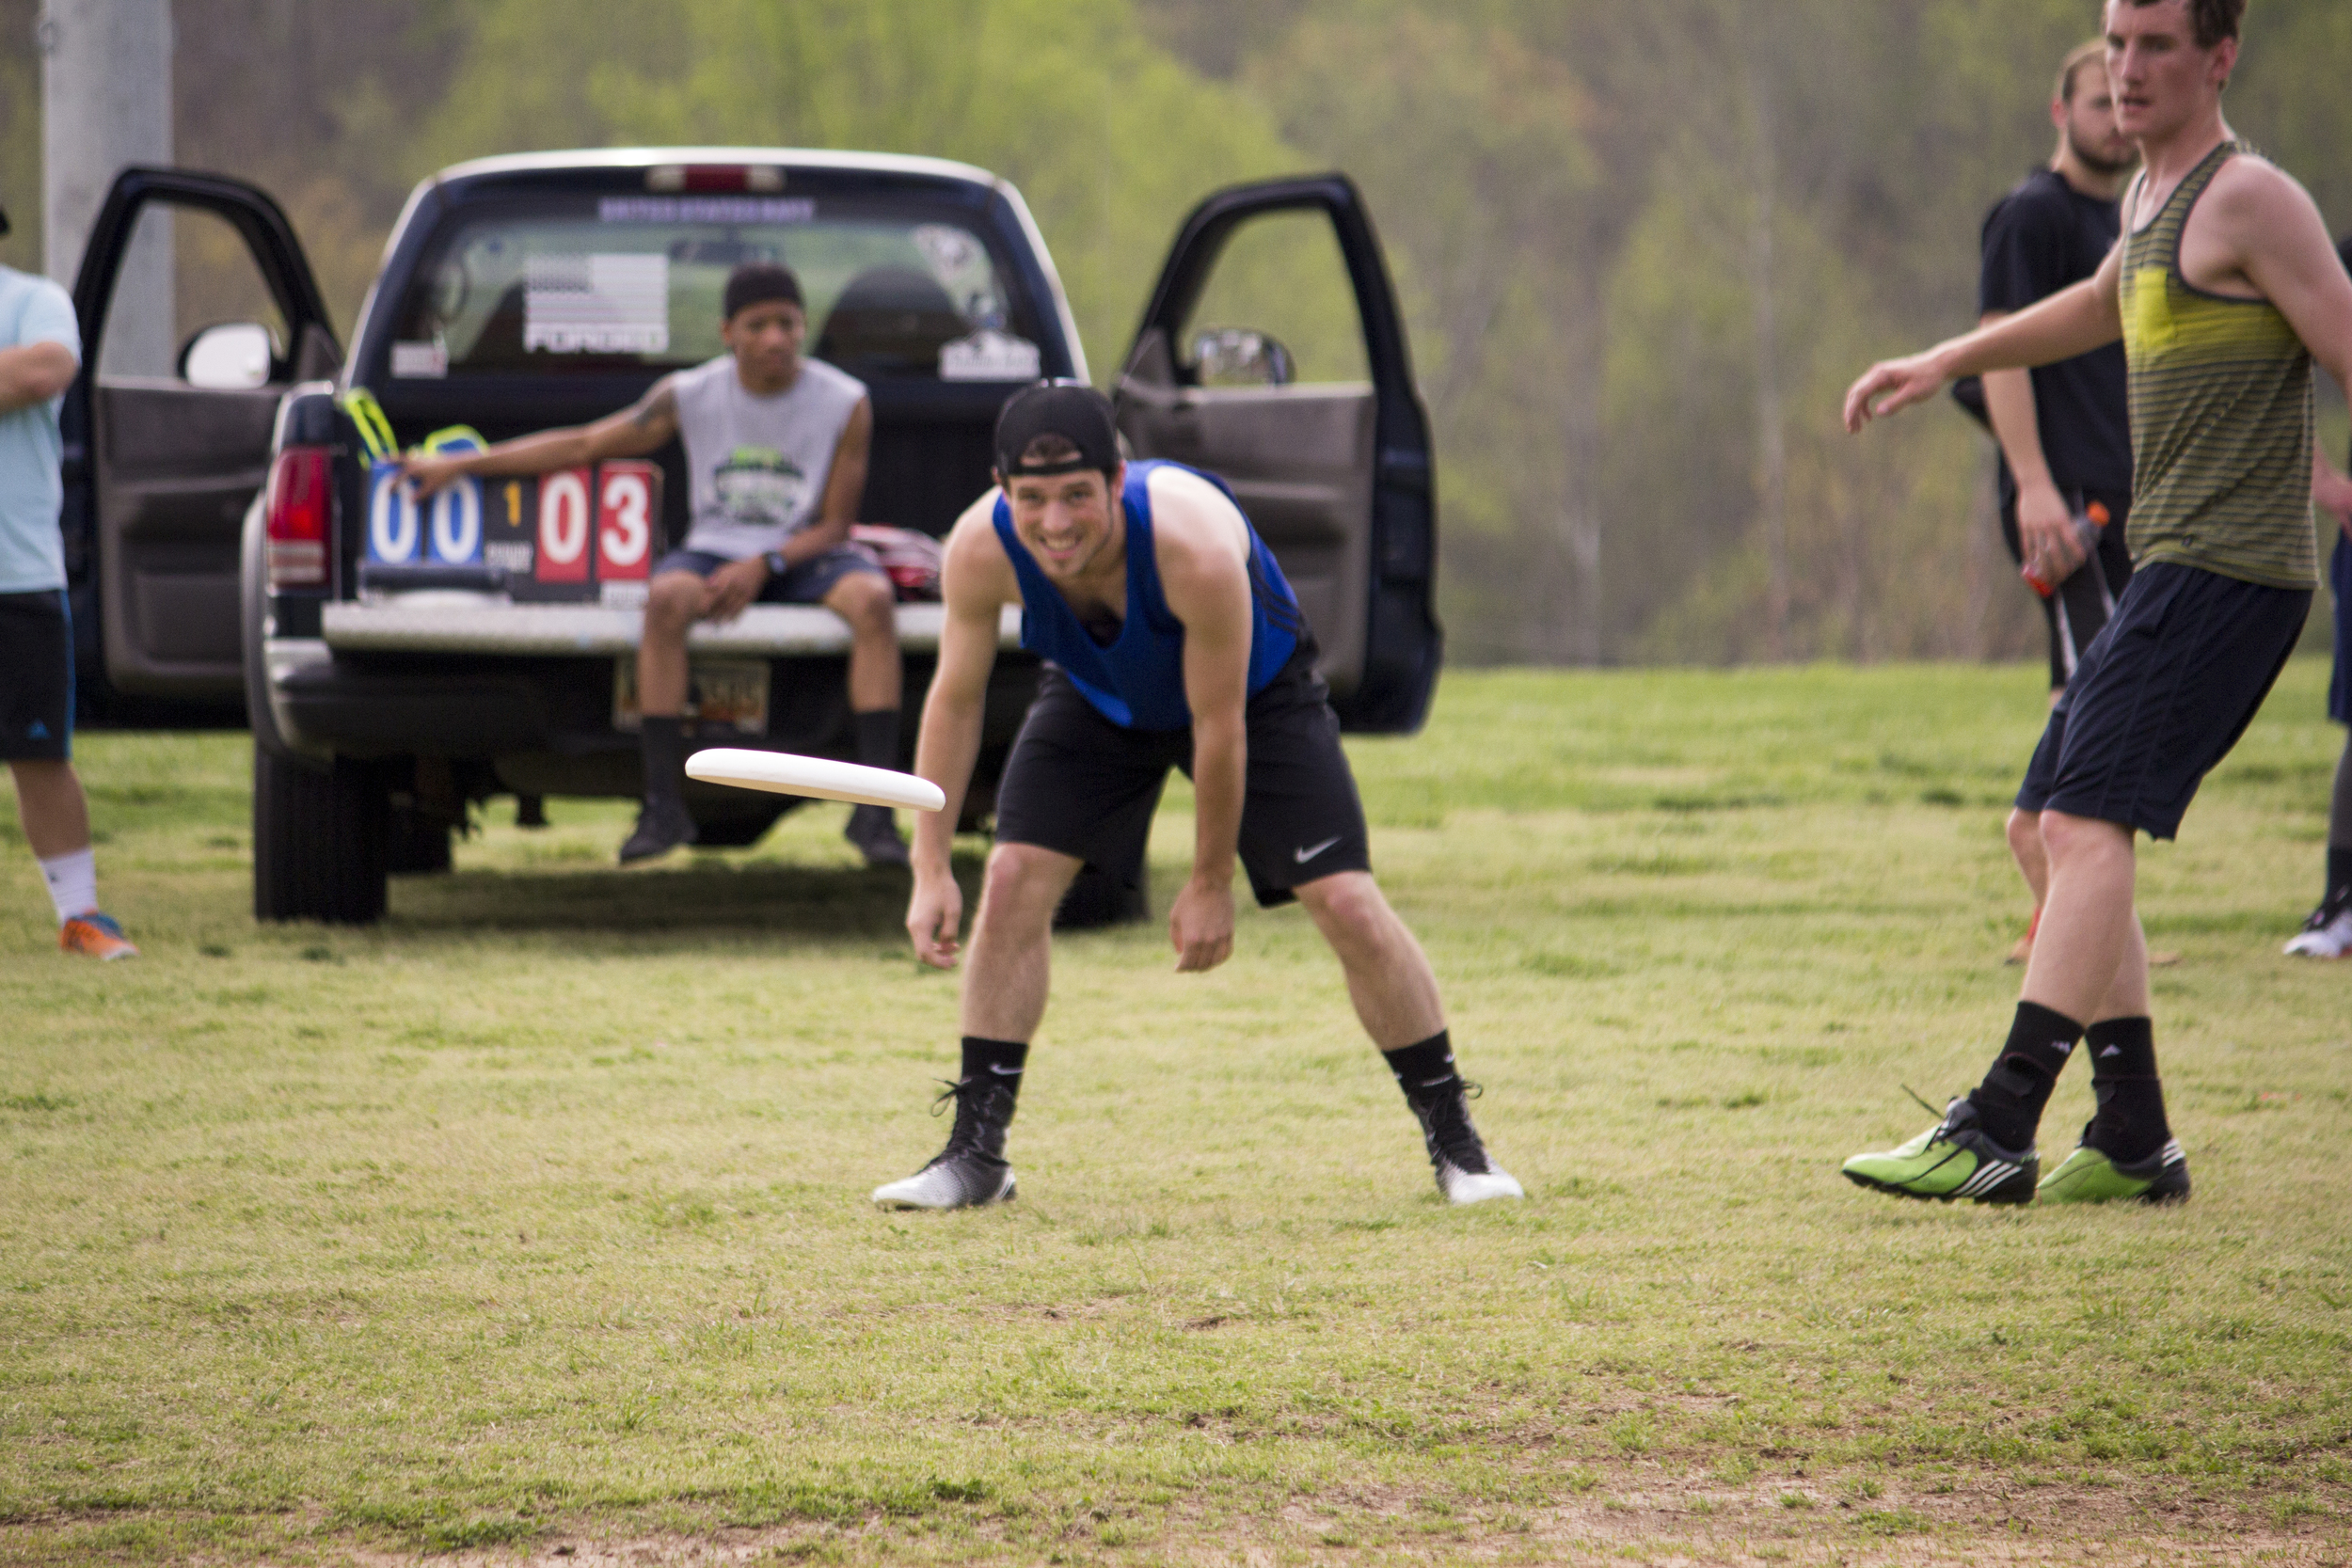 Daniel Shamblin watches his released frisbee as his teammate runs to catch it.